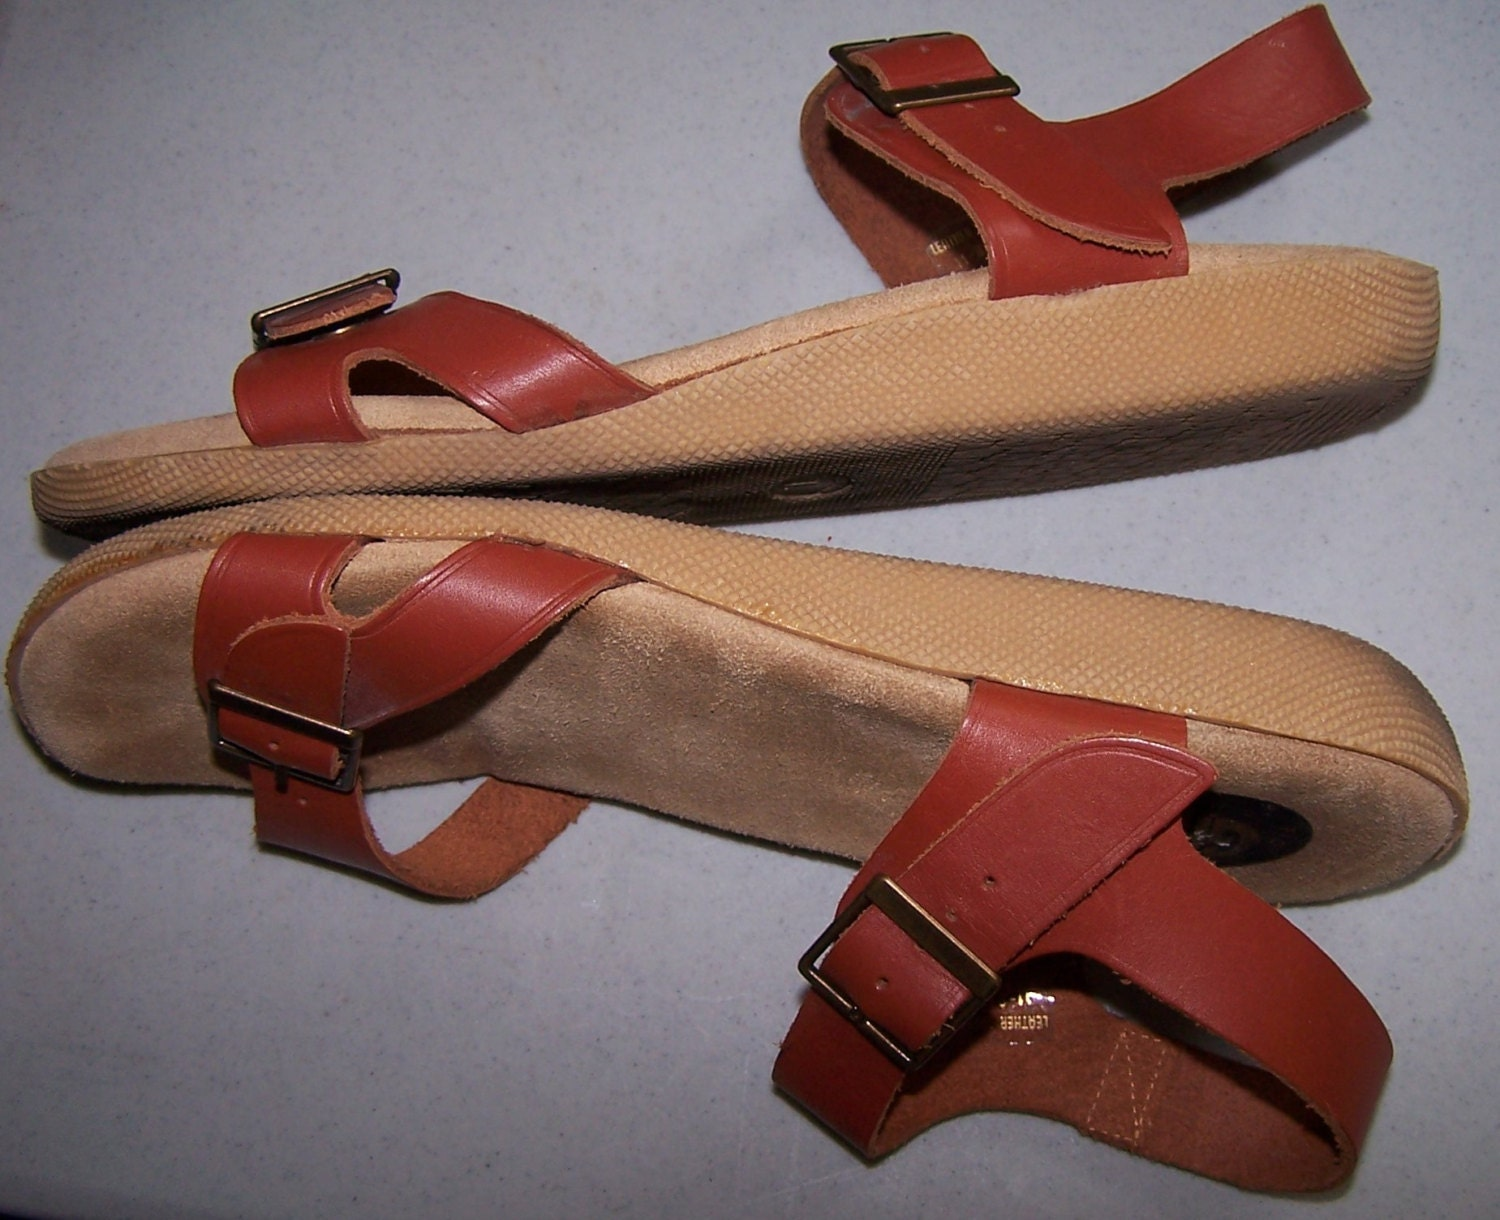 Womens sandals in size 11 -  Women S Size 11 Sandals Zoom